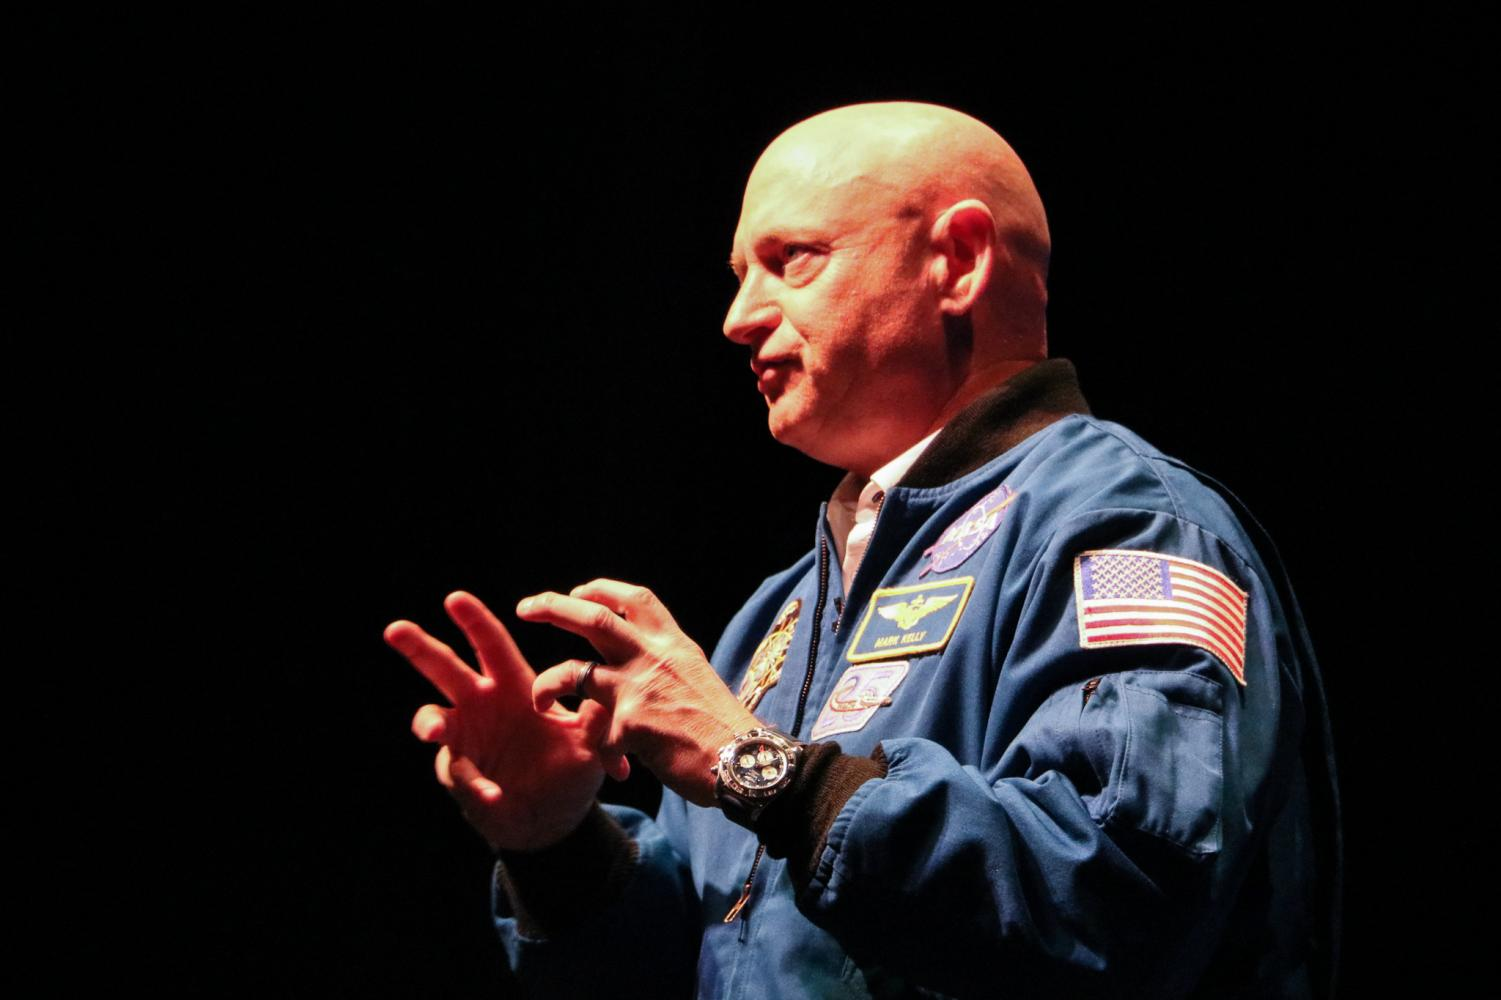 Former astronaut Mark Kelly speaks at the College of DuPage, bringing audience members on a voyage, explaining how the lessons he's learned throughout his life have shaped the leader he has become